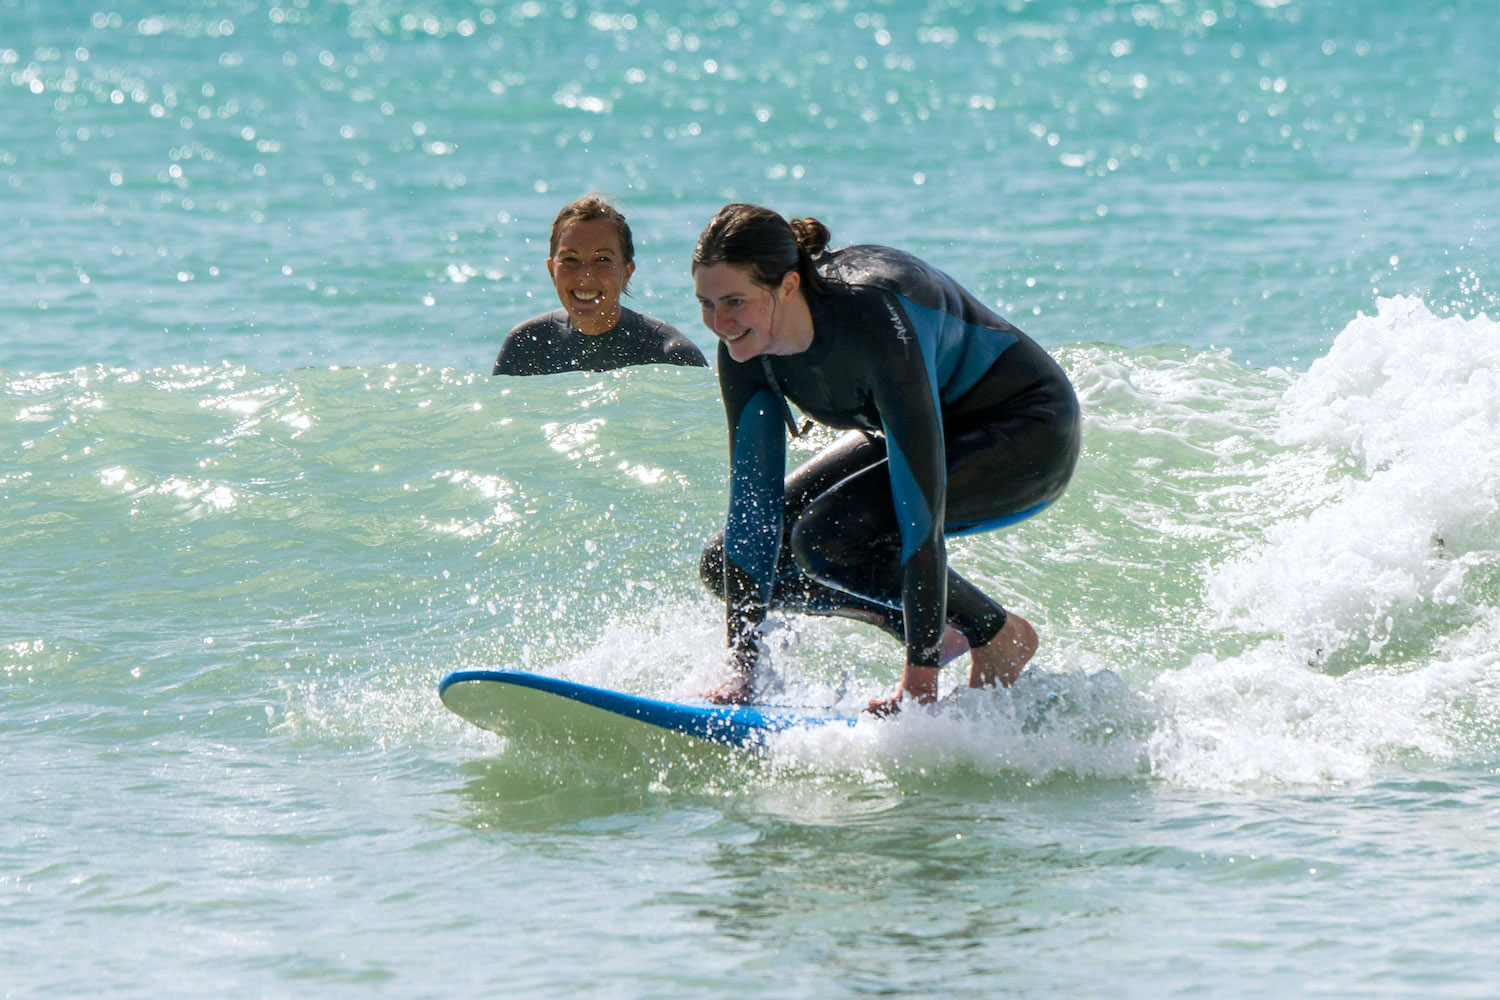 Learning to surf safely and respectfully…